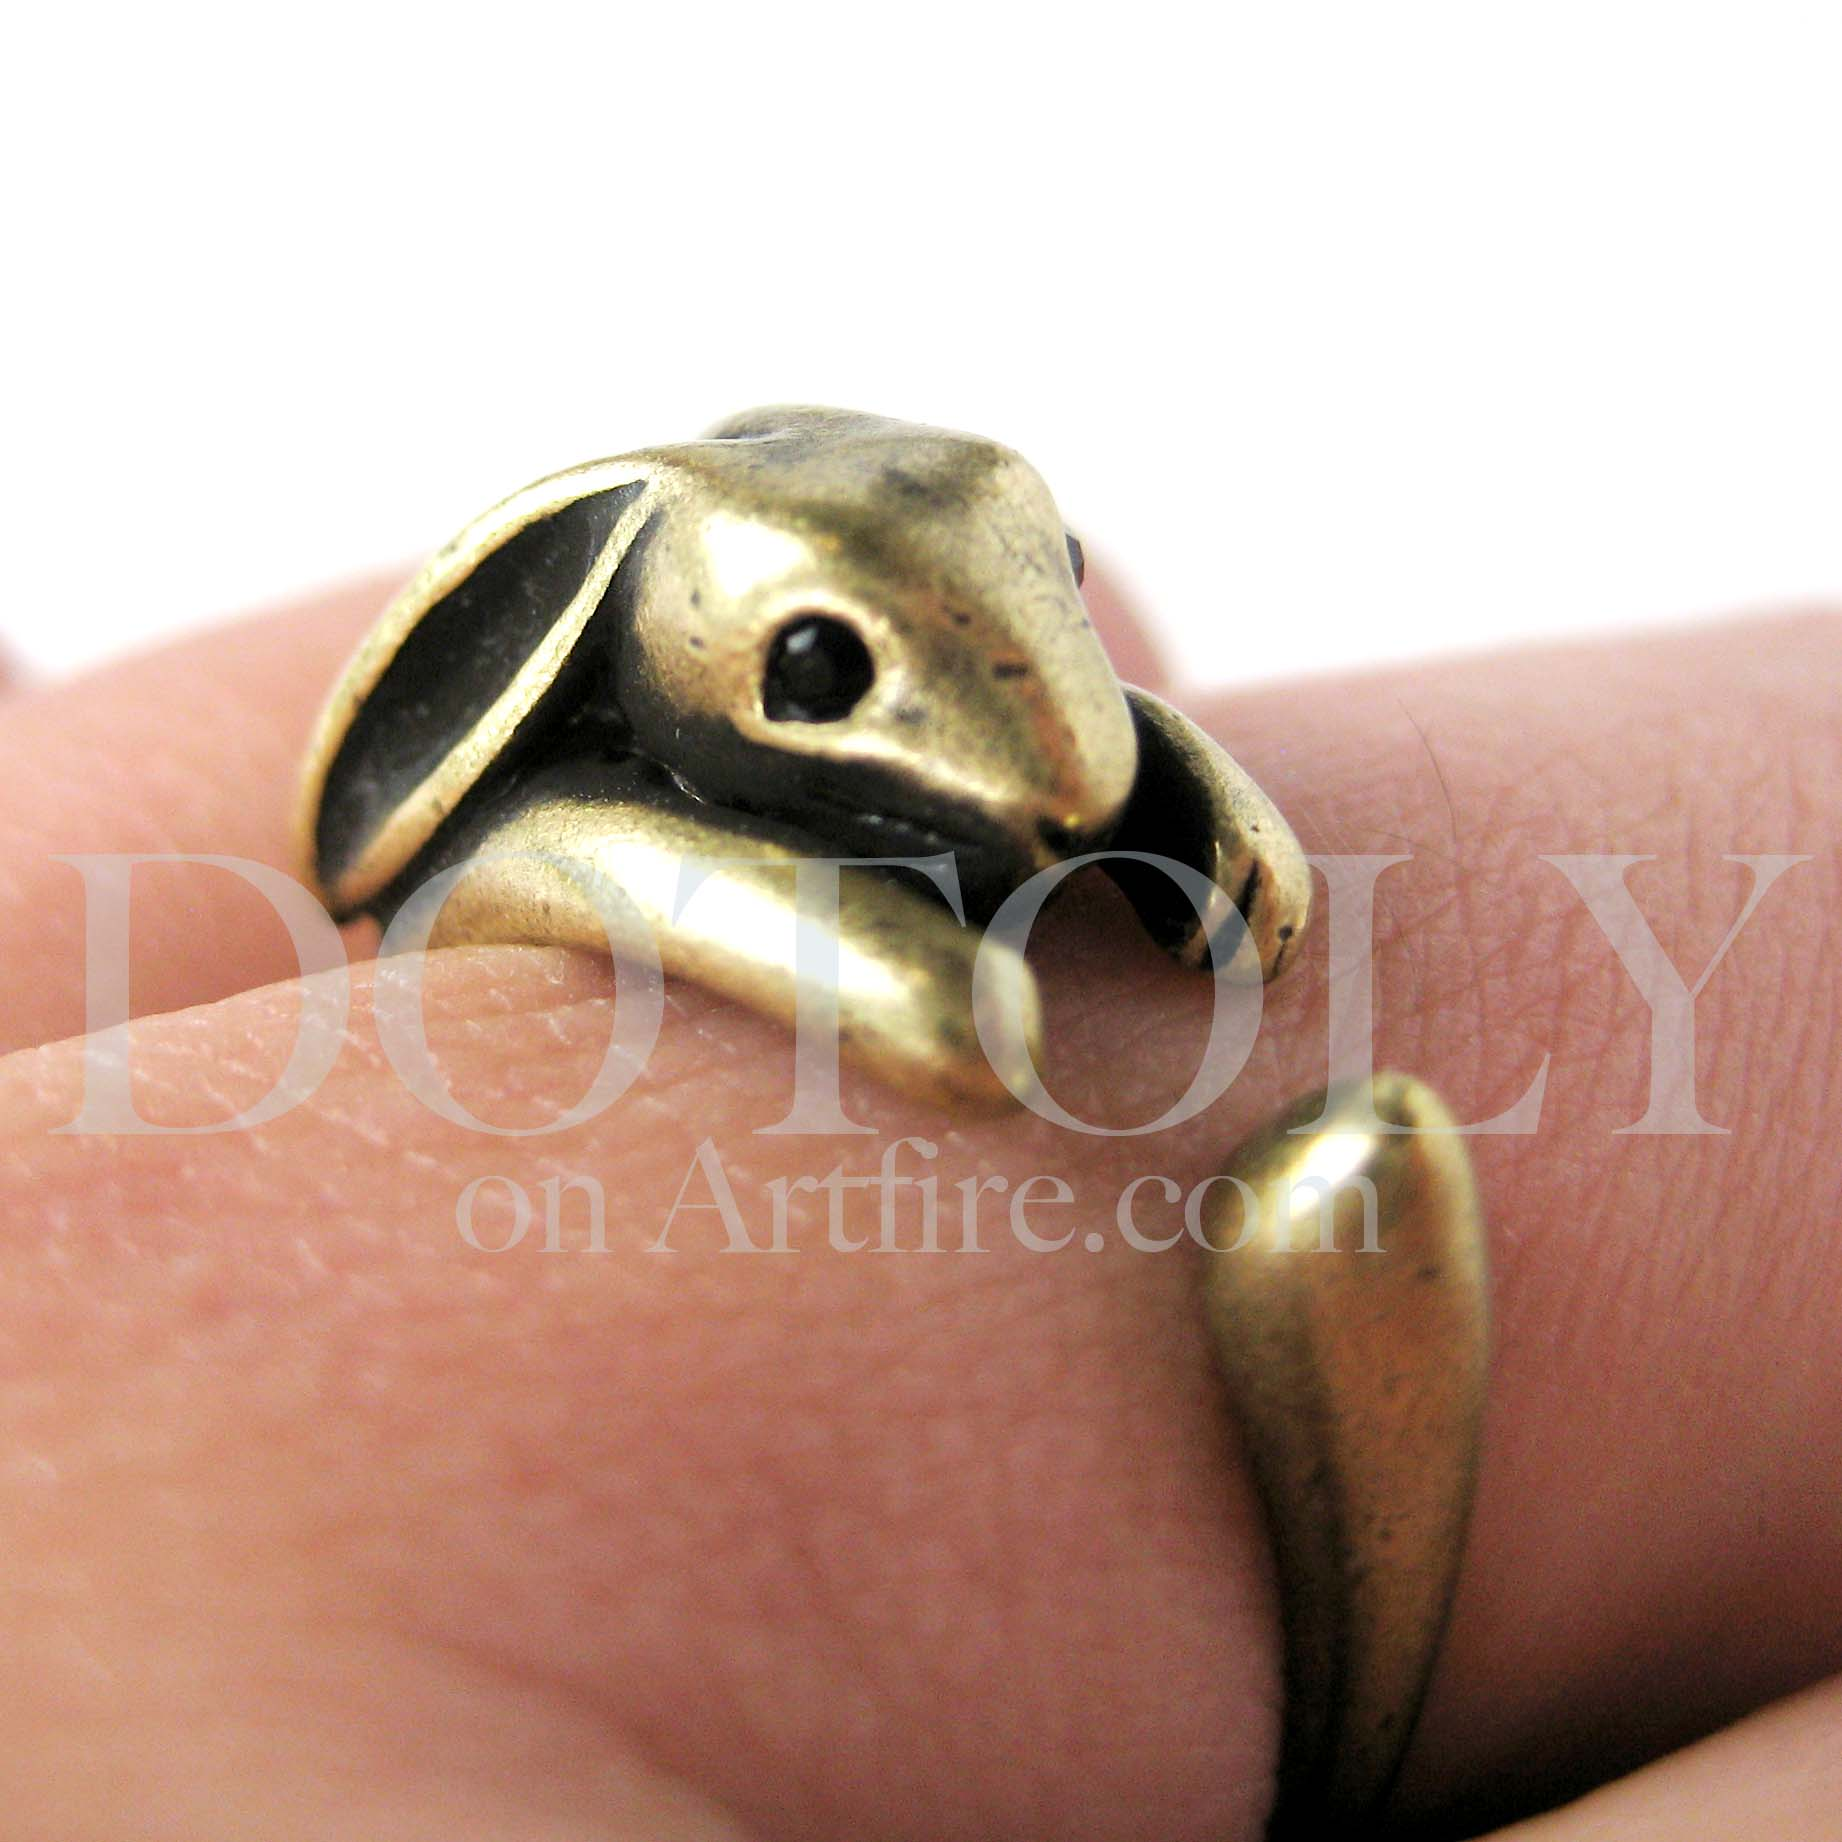 products brass adjustable com marvel loki jewelry bronze comics themed helmet ring avengers original shaped unisex realistic rings in